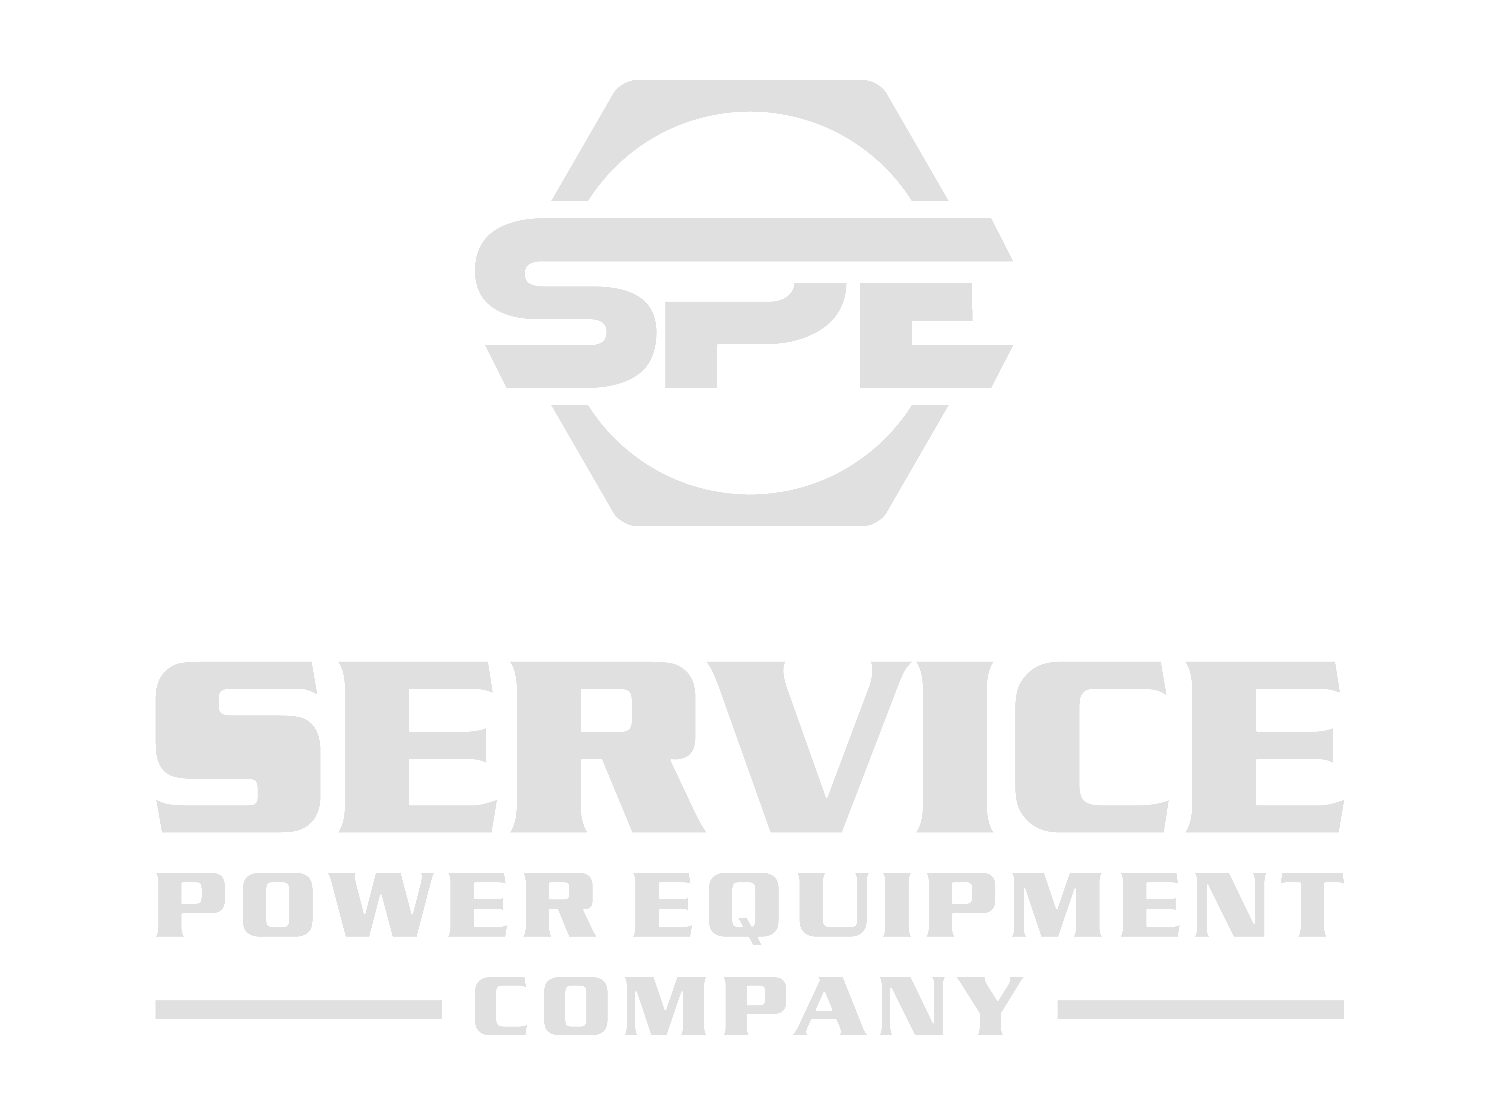 Service Power Equipment